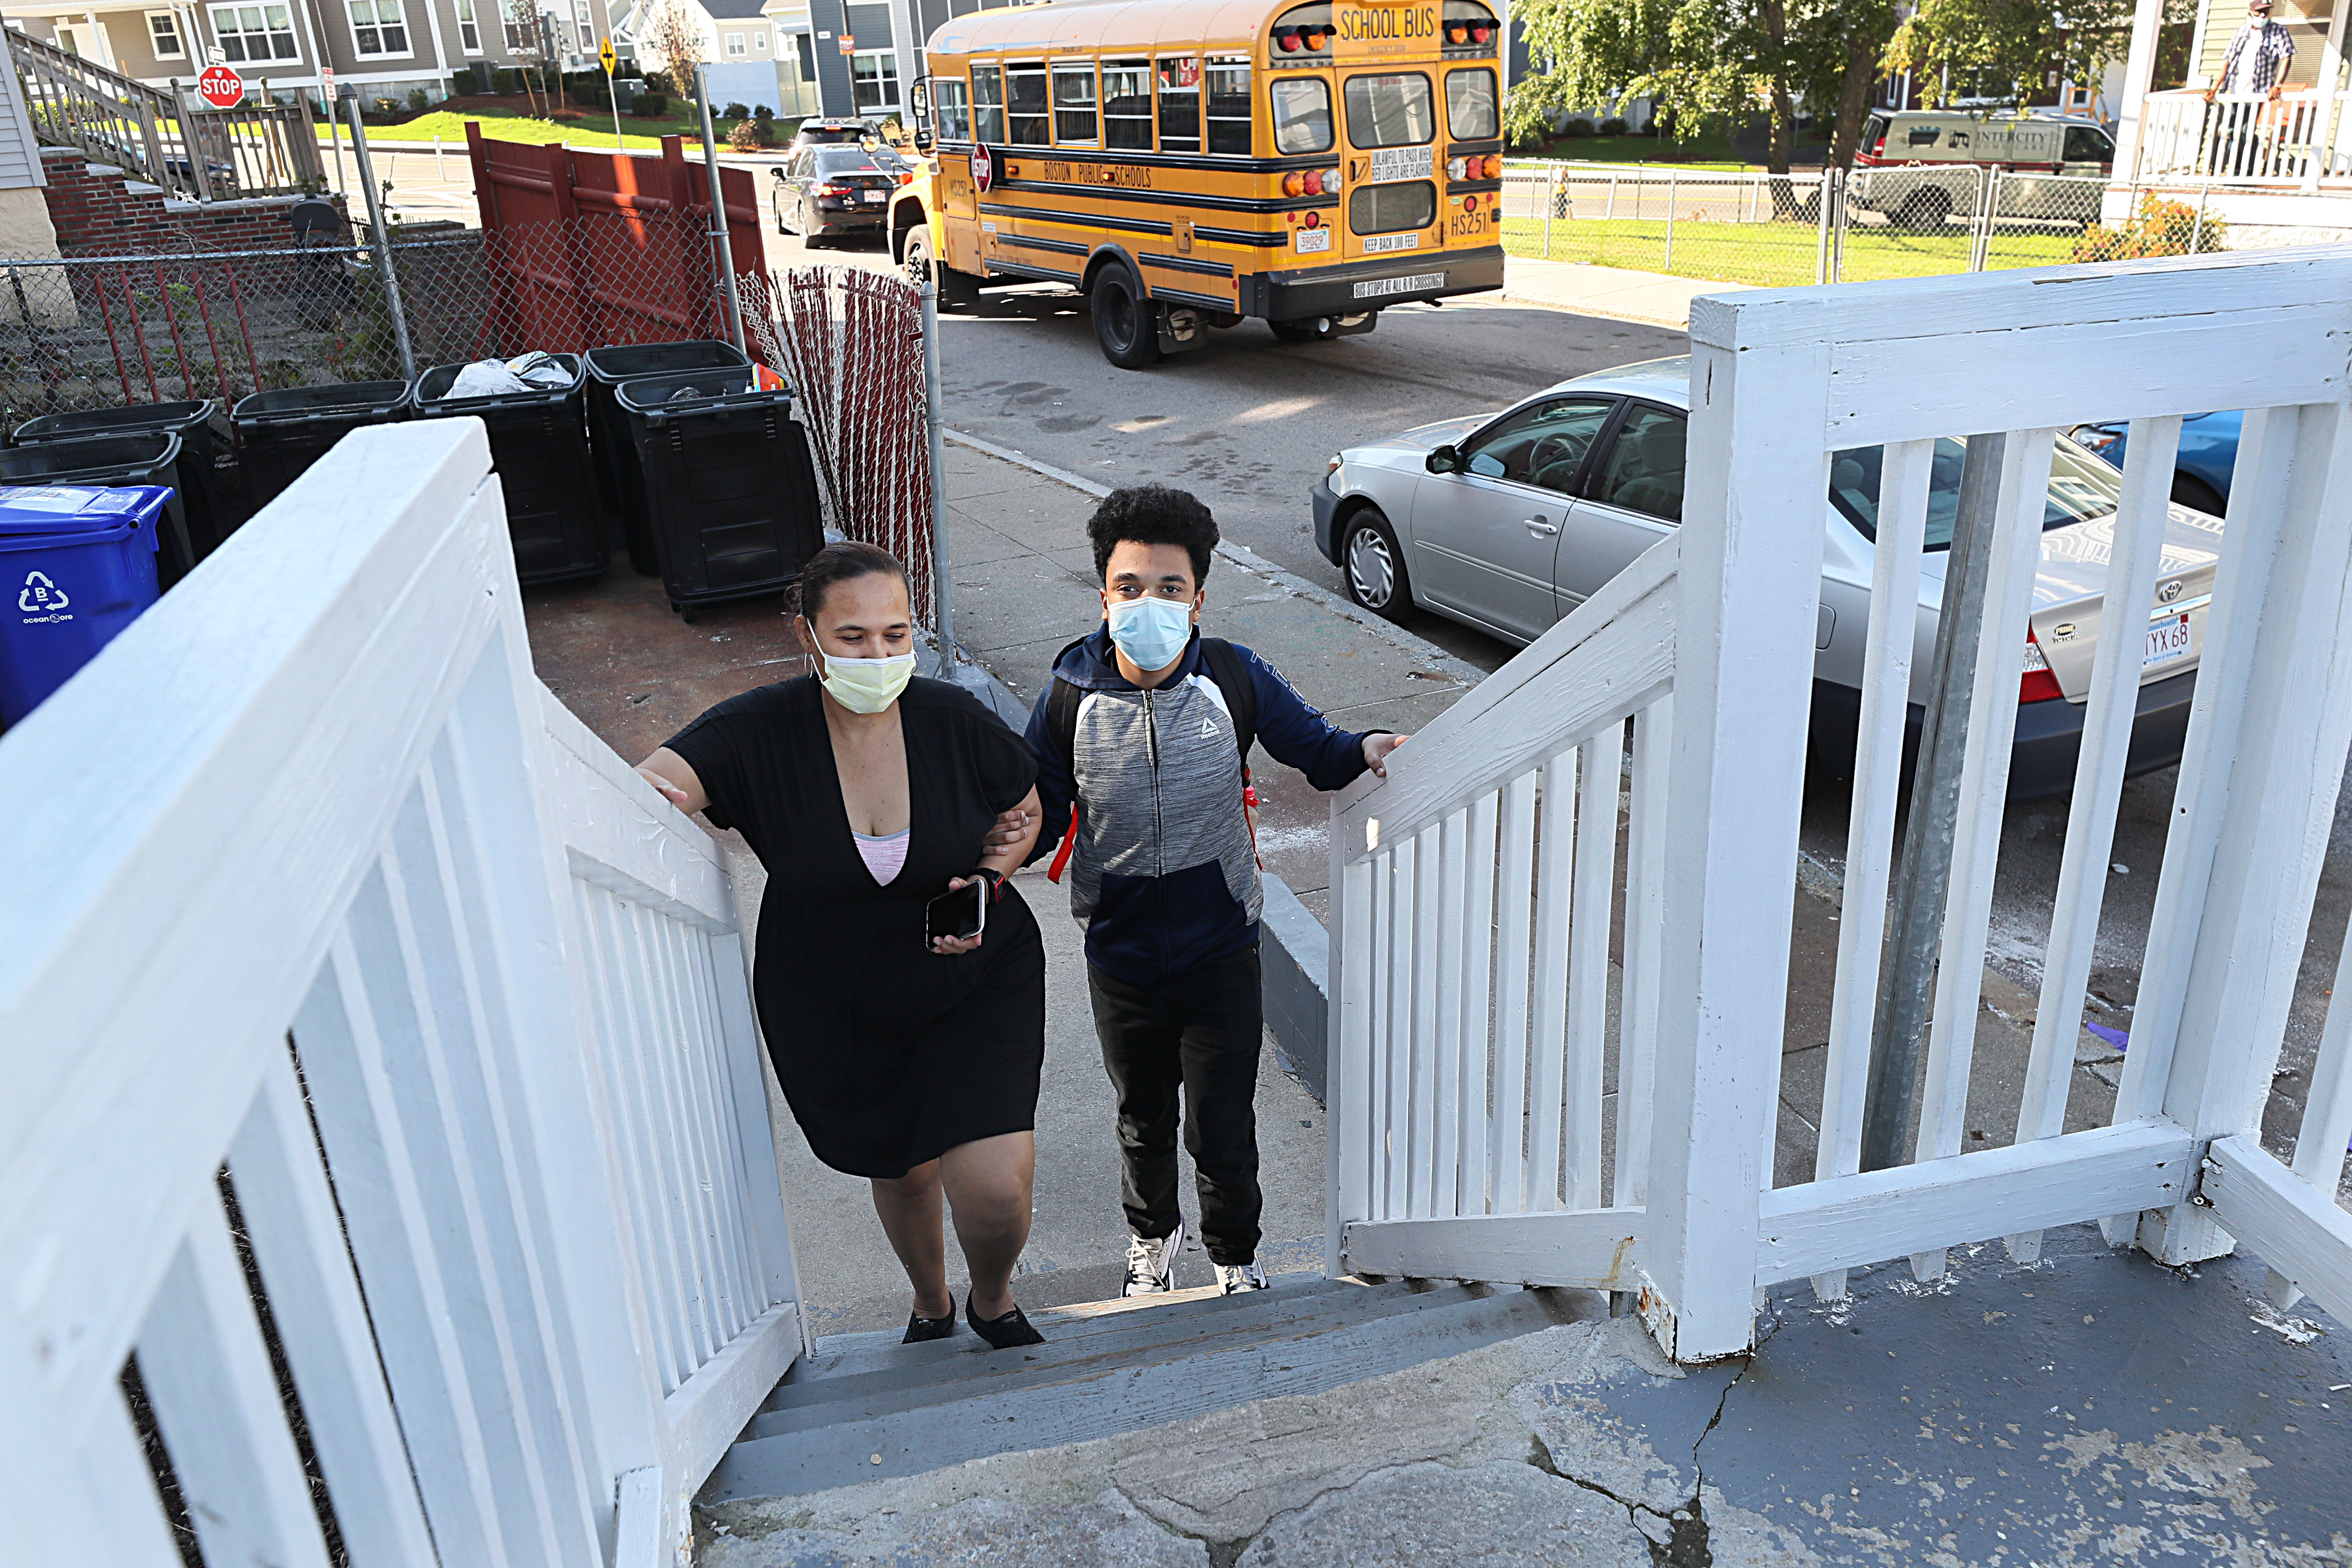 Axel Baez Ramon, with his mother, Zoraida, returned to his home in Mattapan from school Friday.